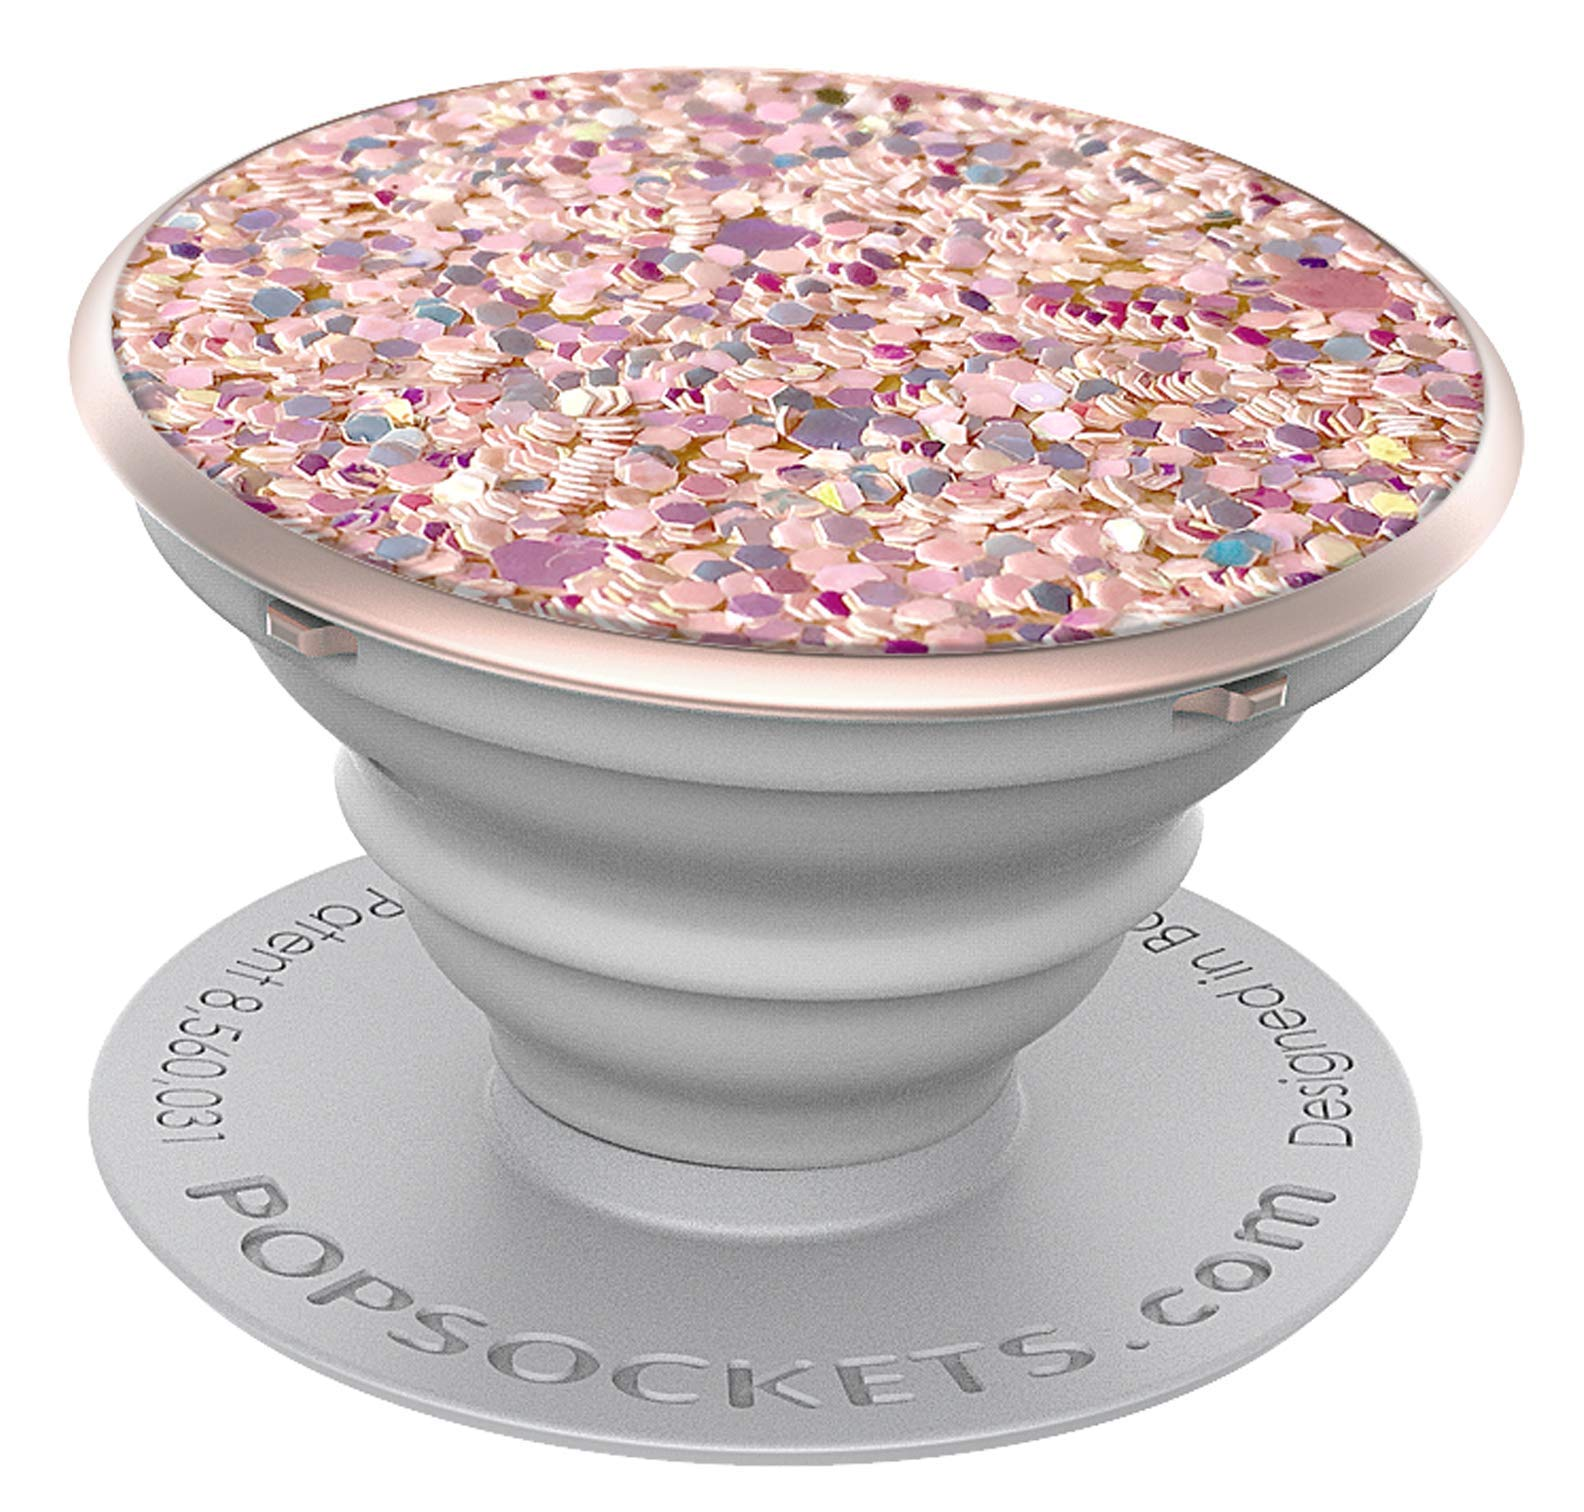 PopSockets: Collapsible Grip & Stand for Phones and Tablets - Sparkle Rose by PopSockets